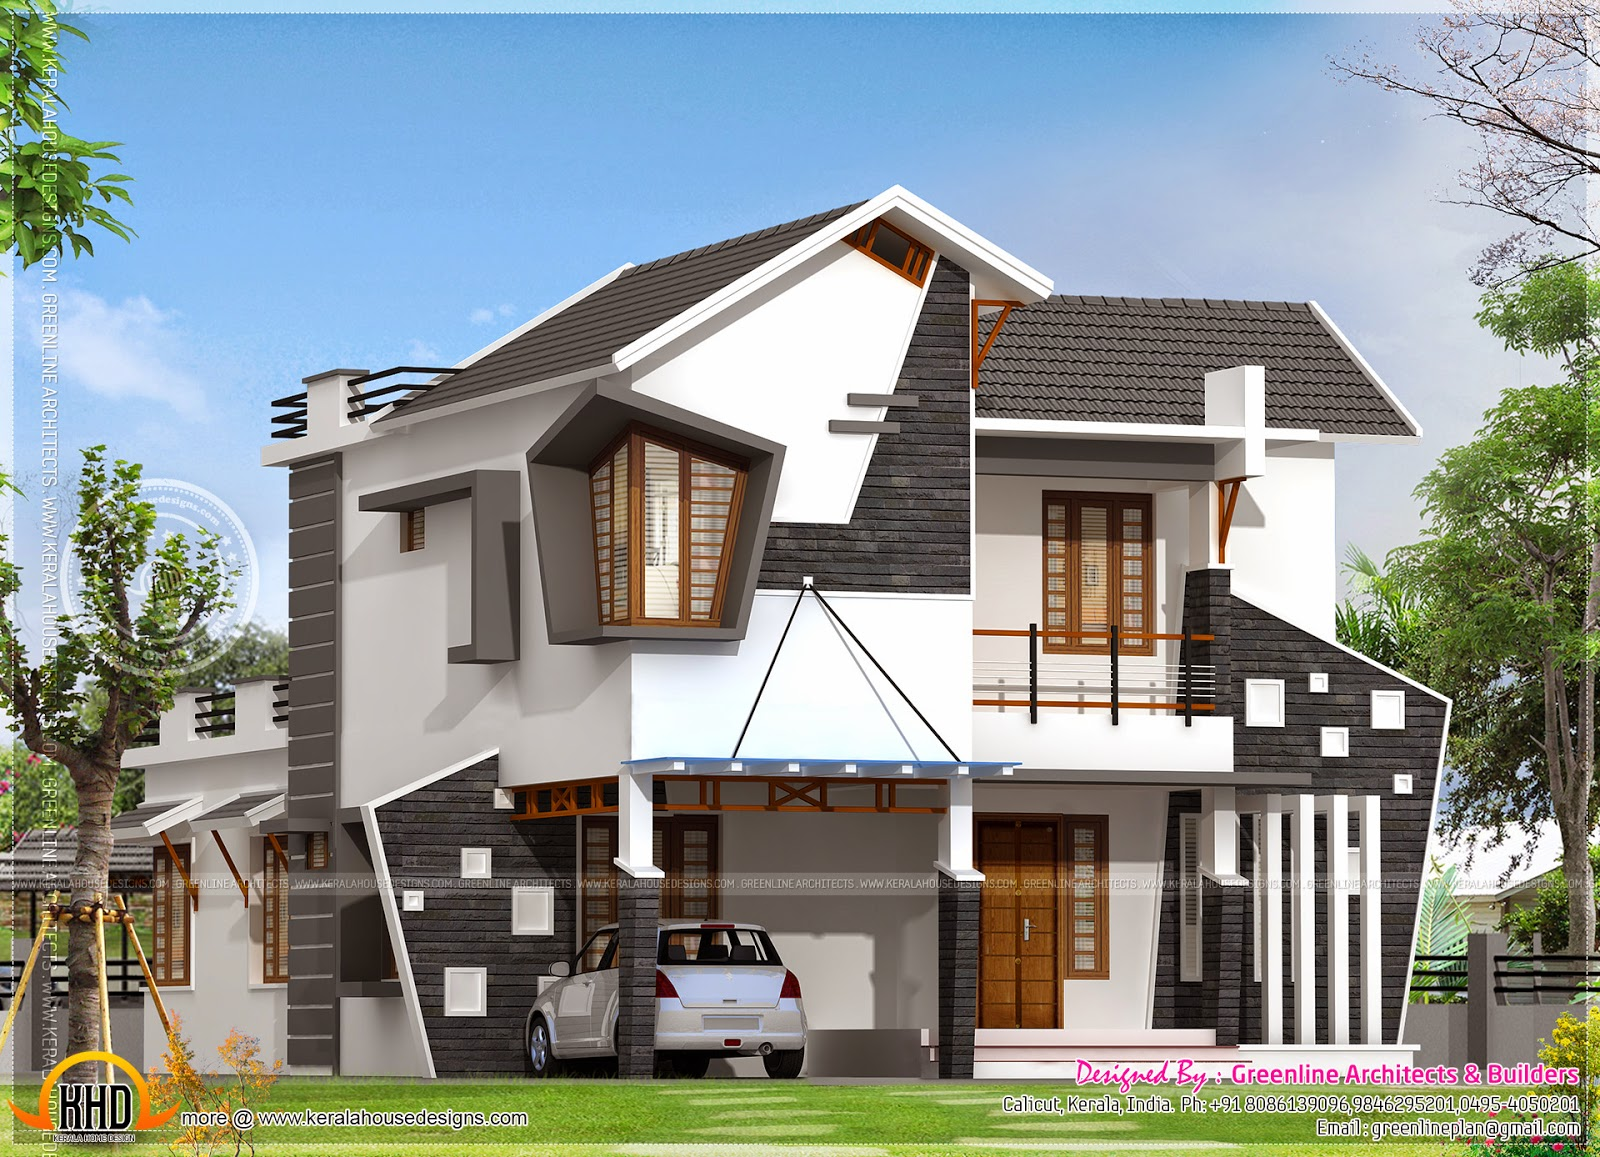 beautiful home design flat roof style keralahousedesigns ForUnique House Exteriors